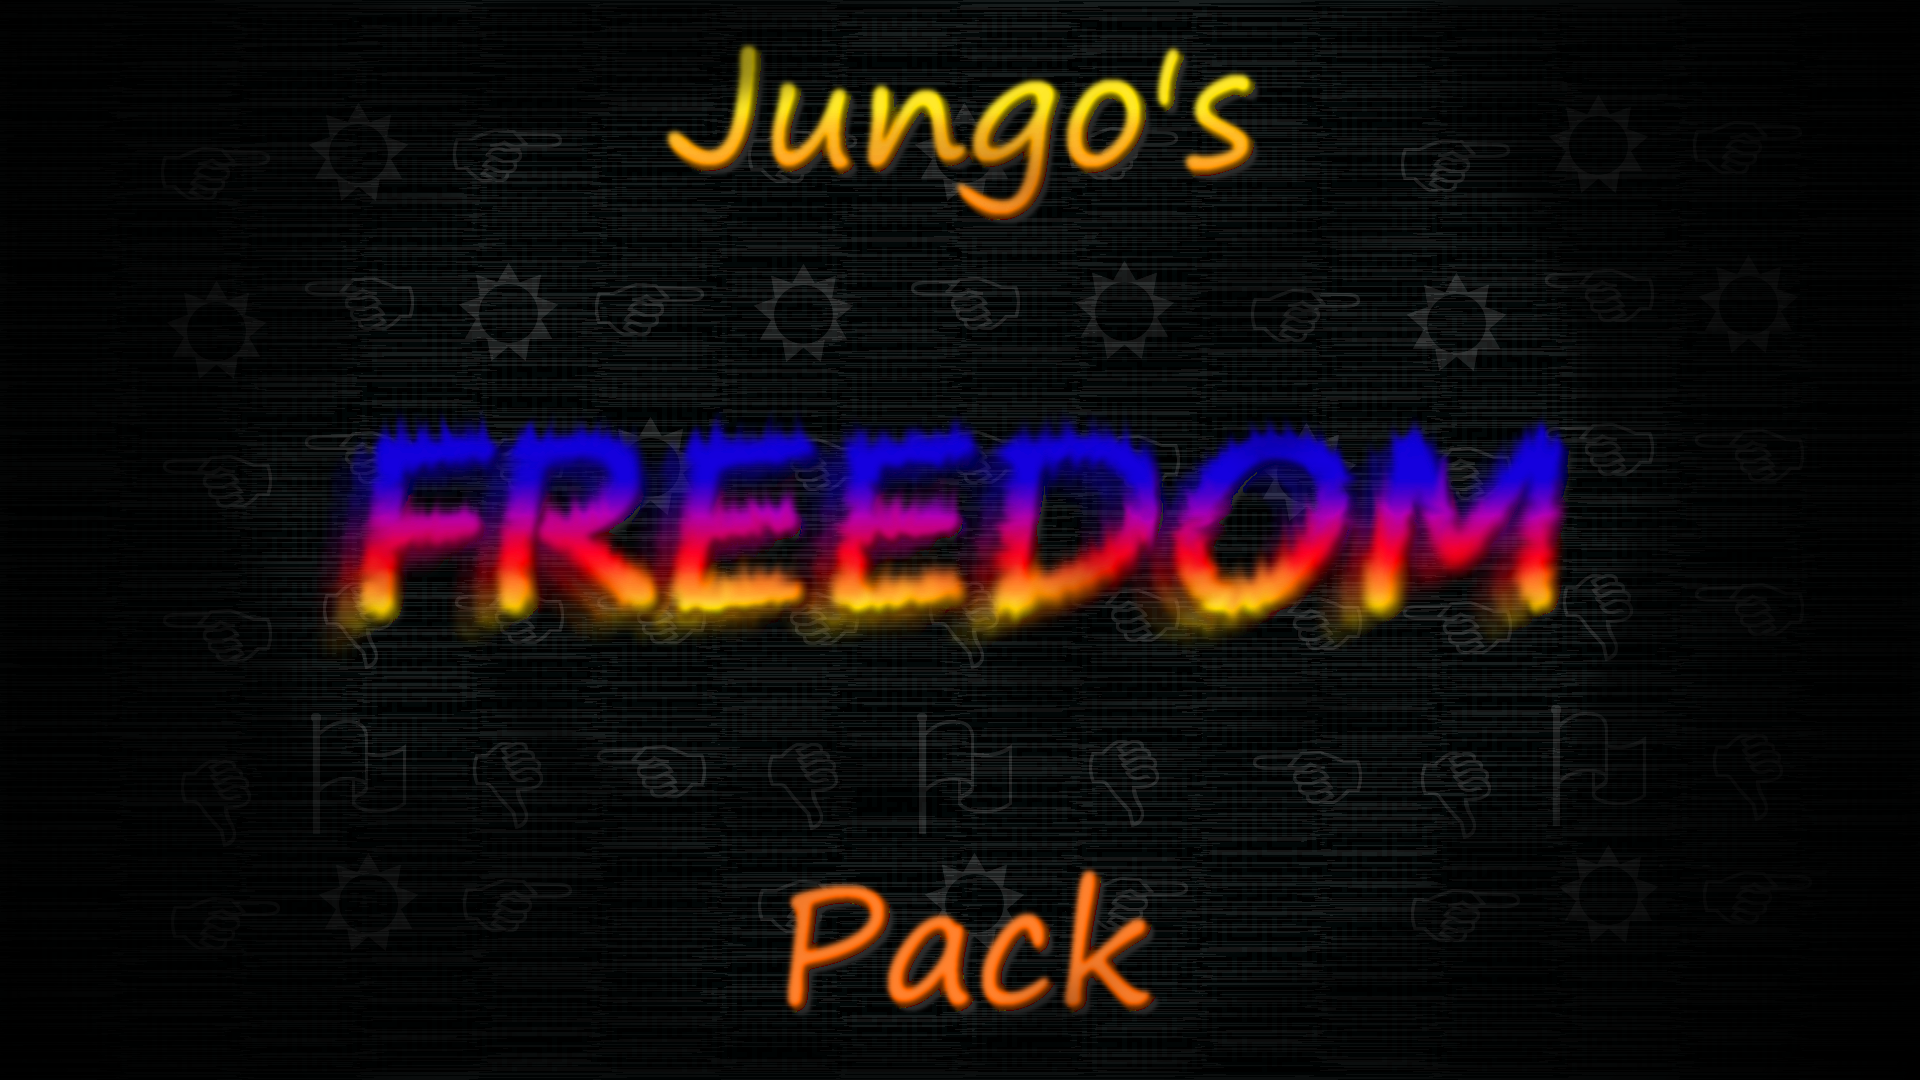 Jungo's Freedom Pack